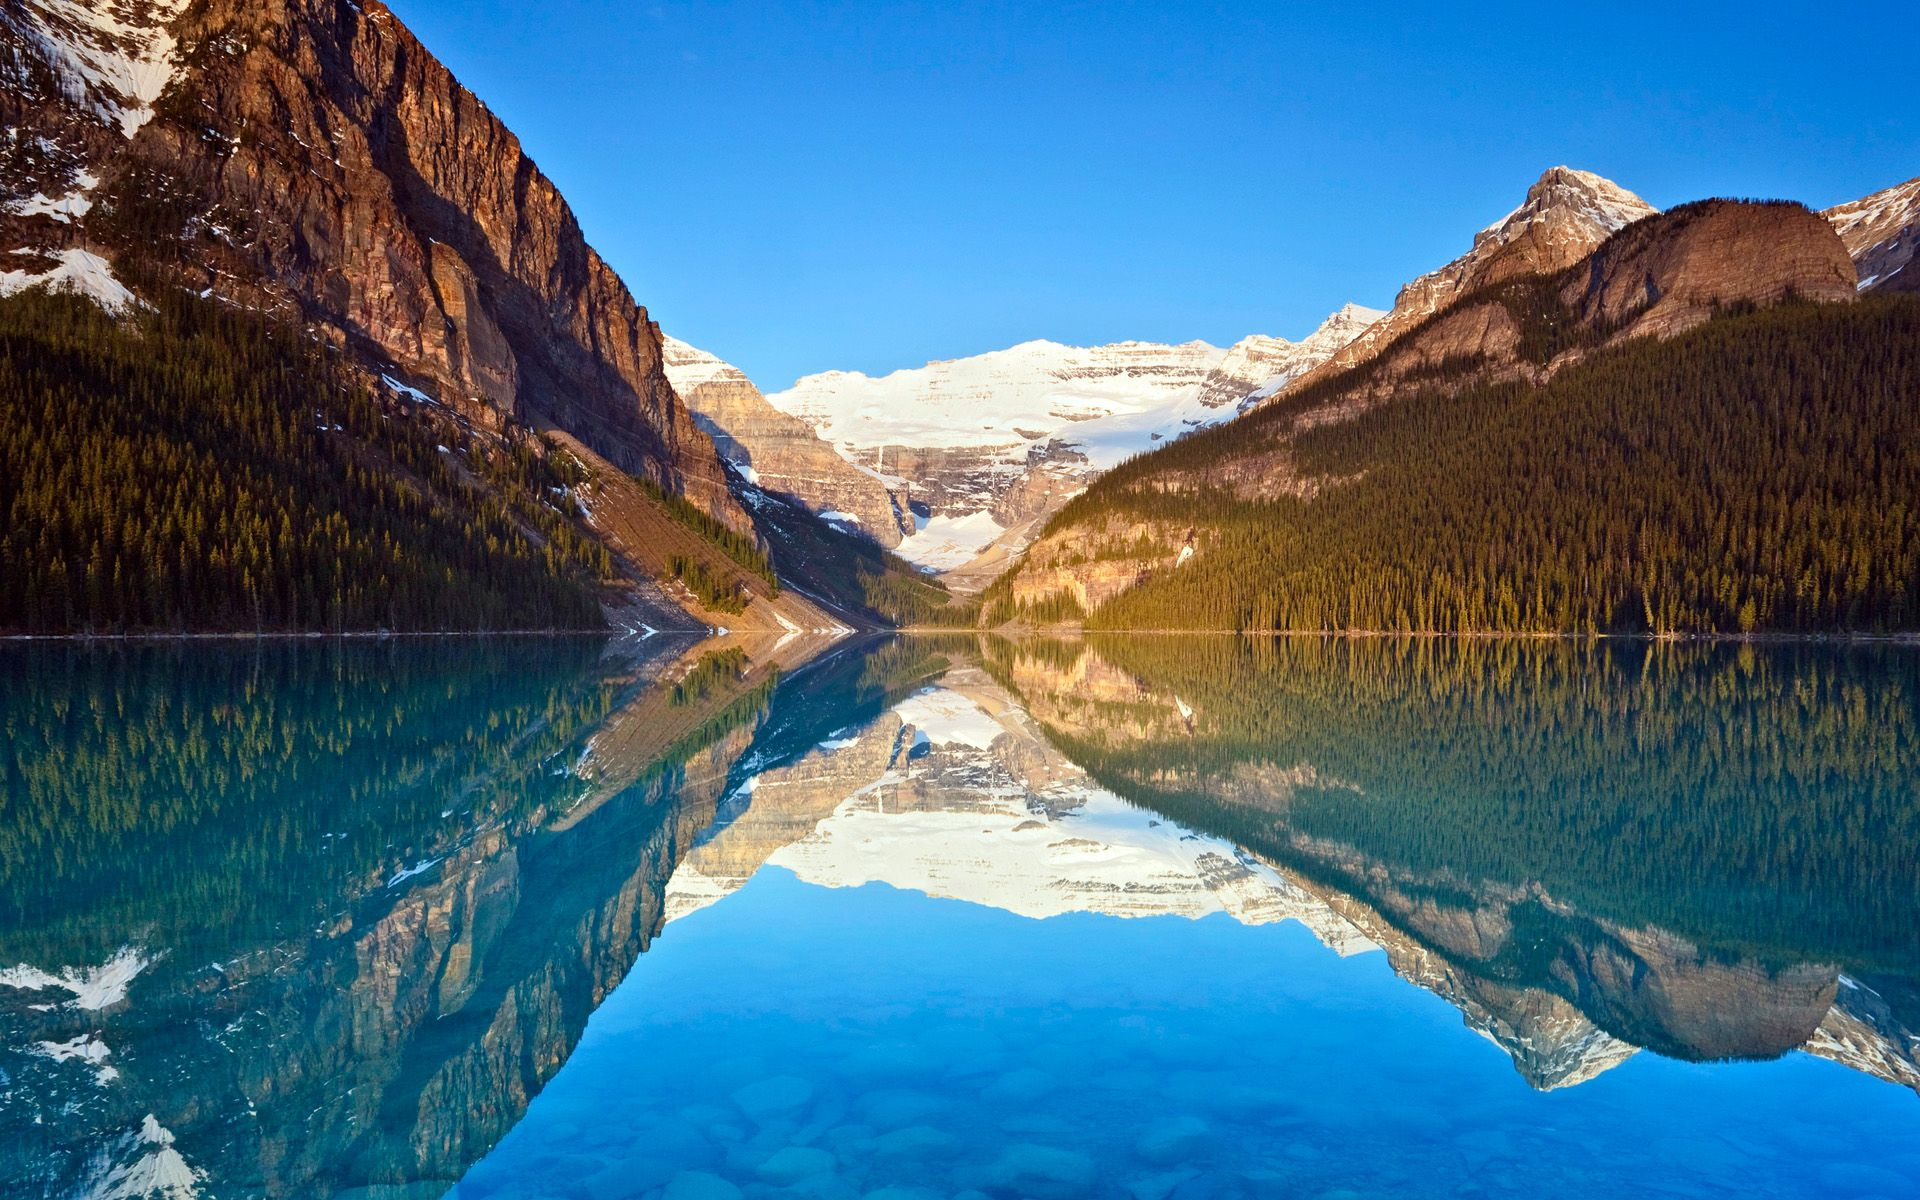 Lake Louise Reflections Wallpapers Hd Wallpapers Landscape Wallpaper Wallpaper Windows 10 Nature Wallpaper